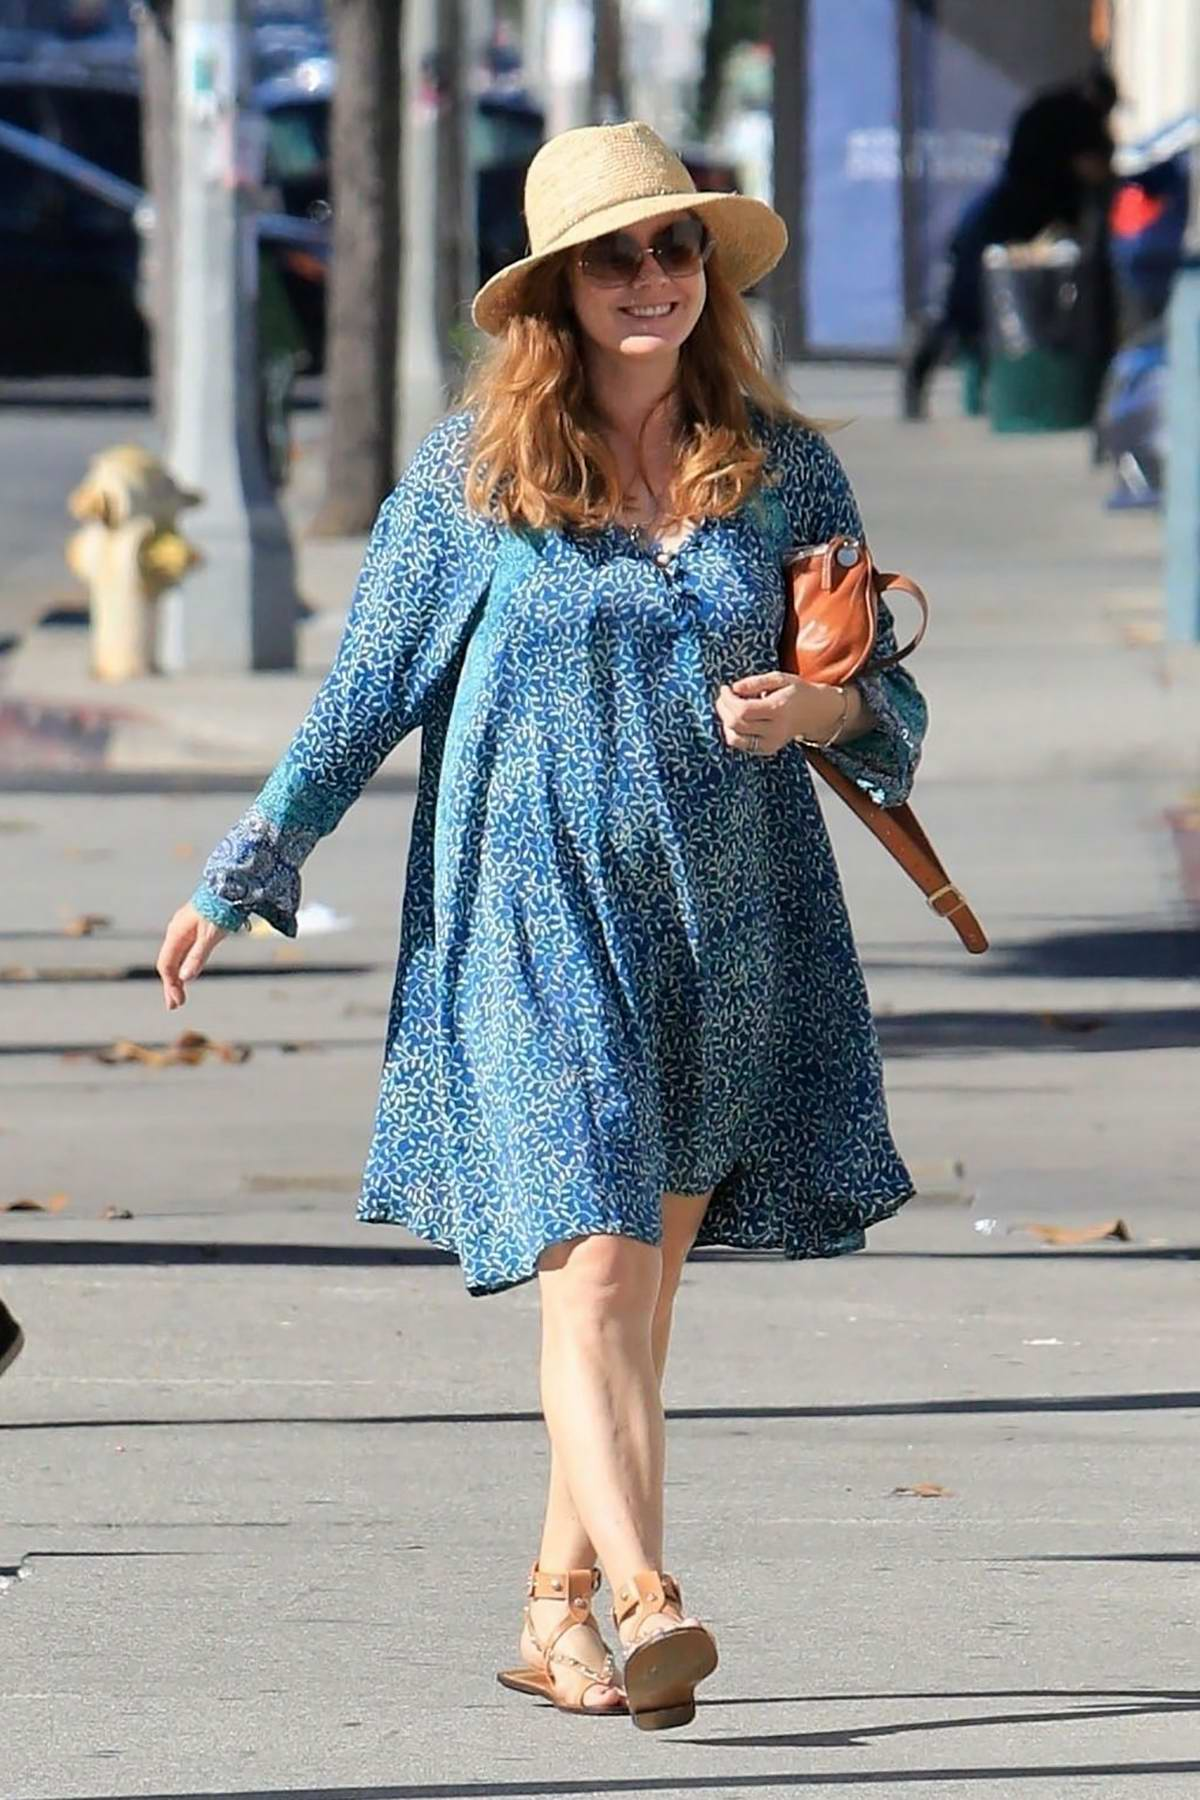 Amy Adams looks beautiful in a blue dress while out for lunch with husband Darren Le Gallo in Beverly Hills, Los Angeles